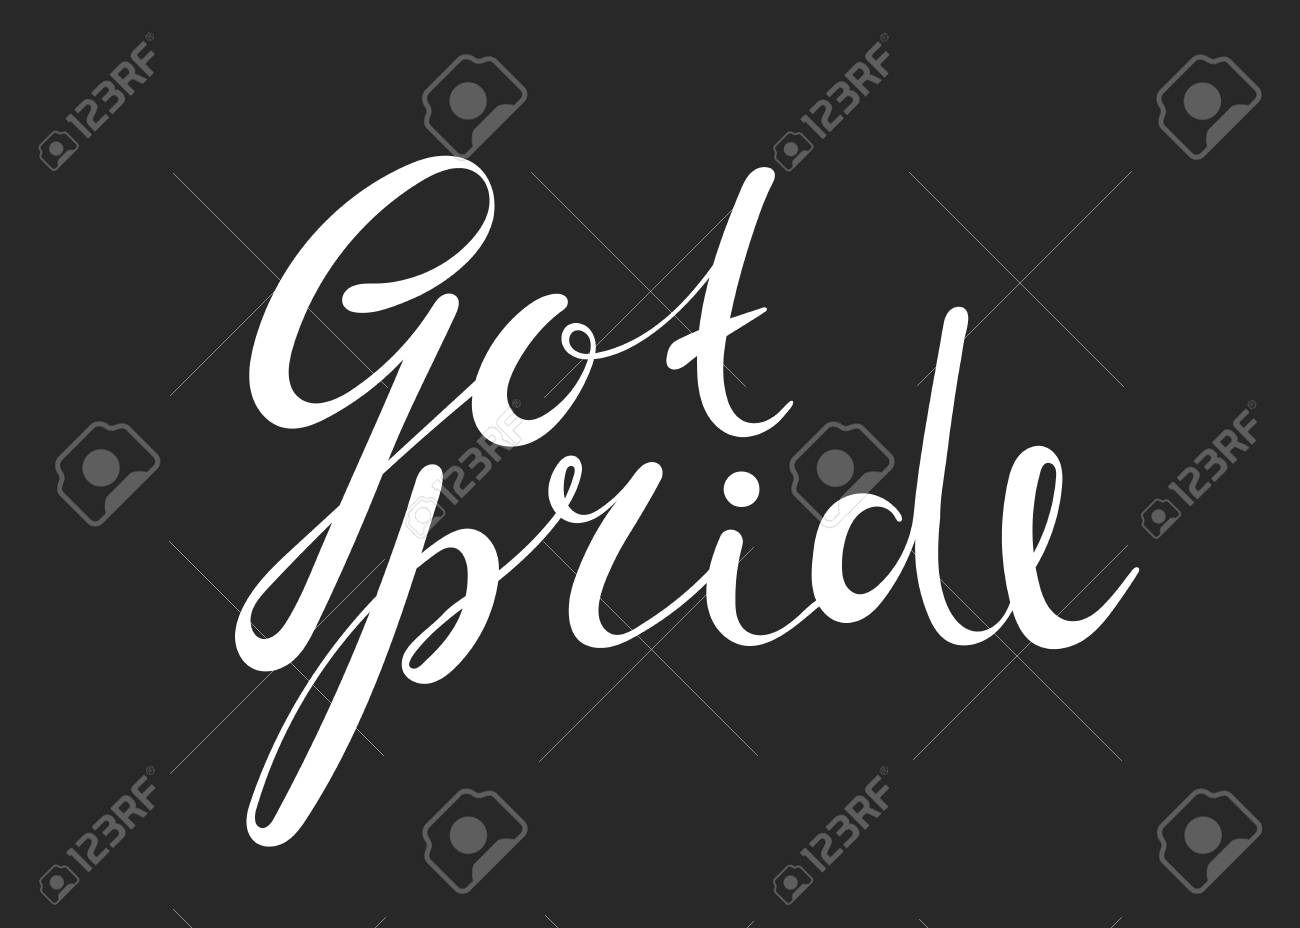 Got pride handwriting inscription on black background calligraphy